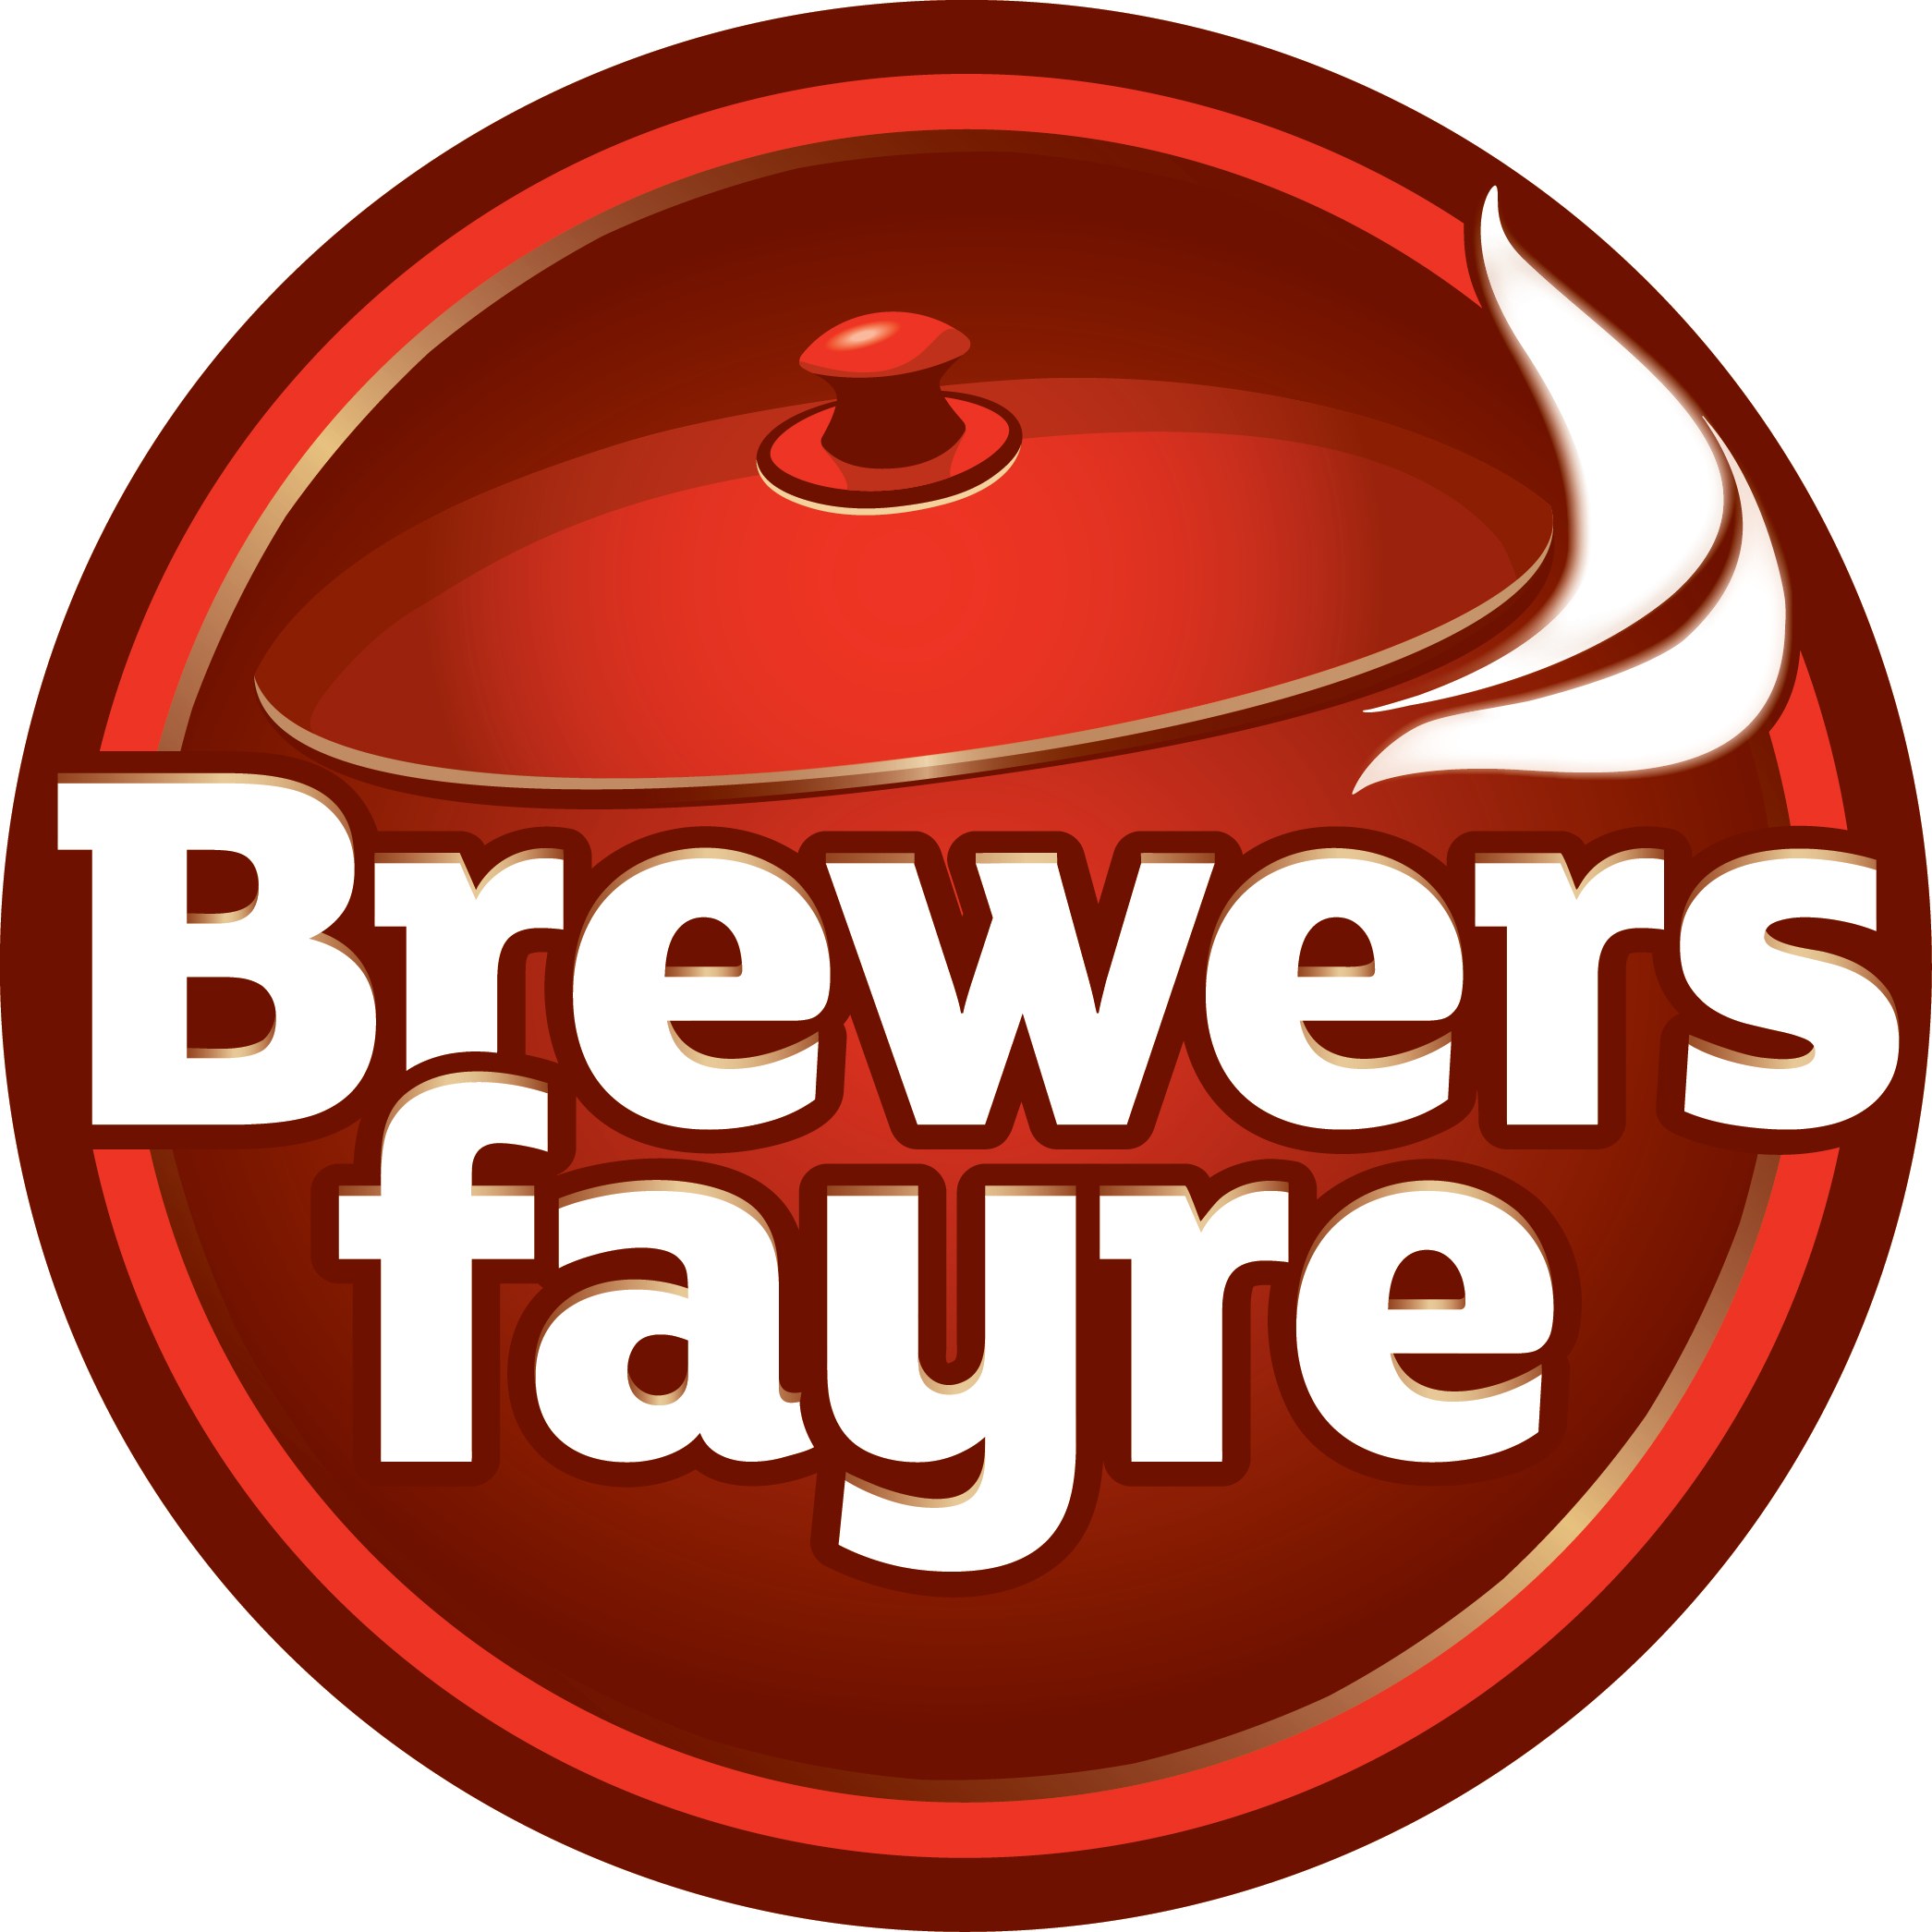 Brewers Fayre O'Bridge - Taunton, Somerset TA2 7RX - 01823 422340 | ShowMeLocal.com